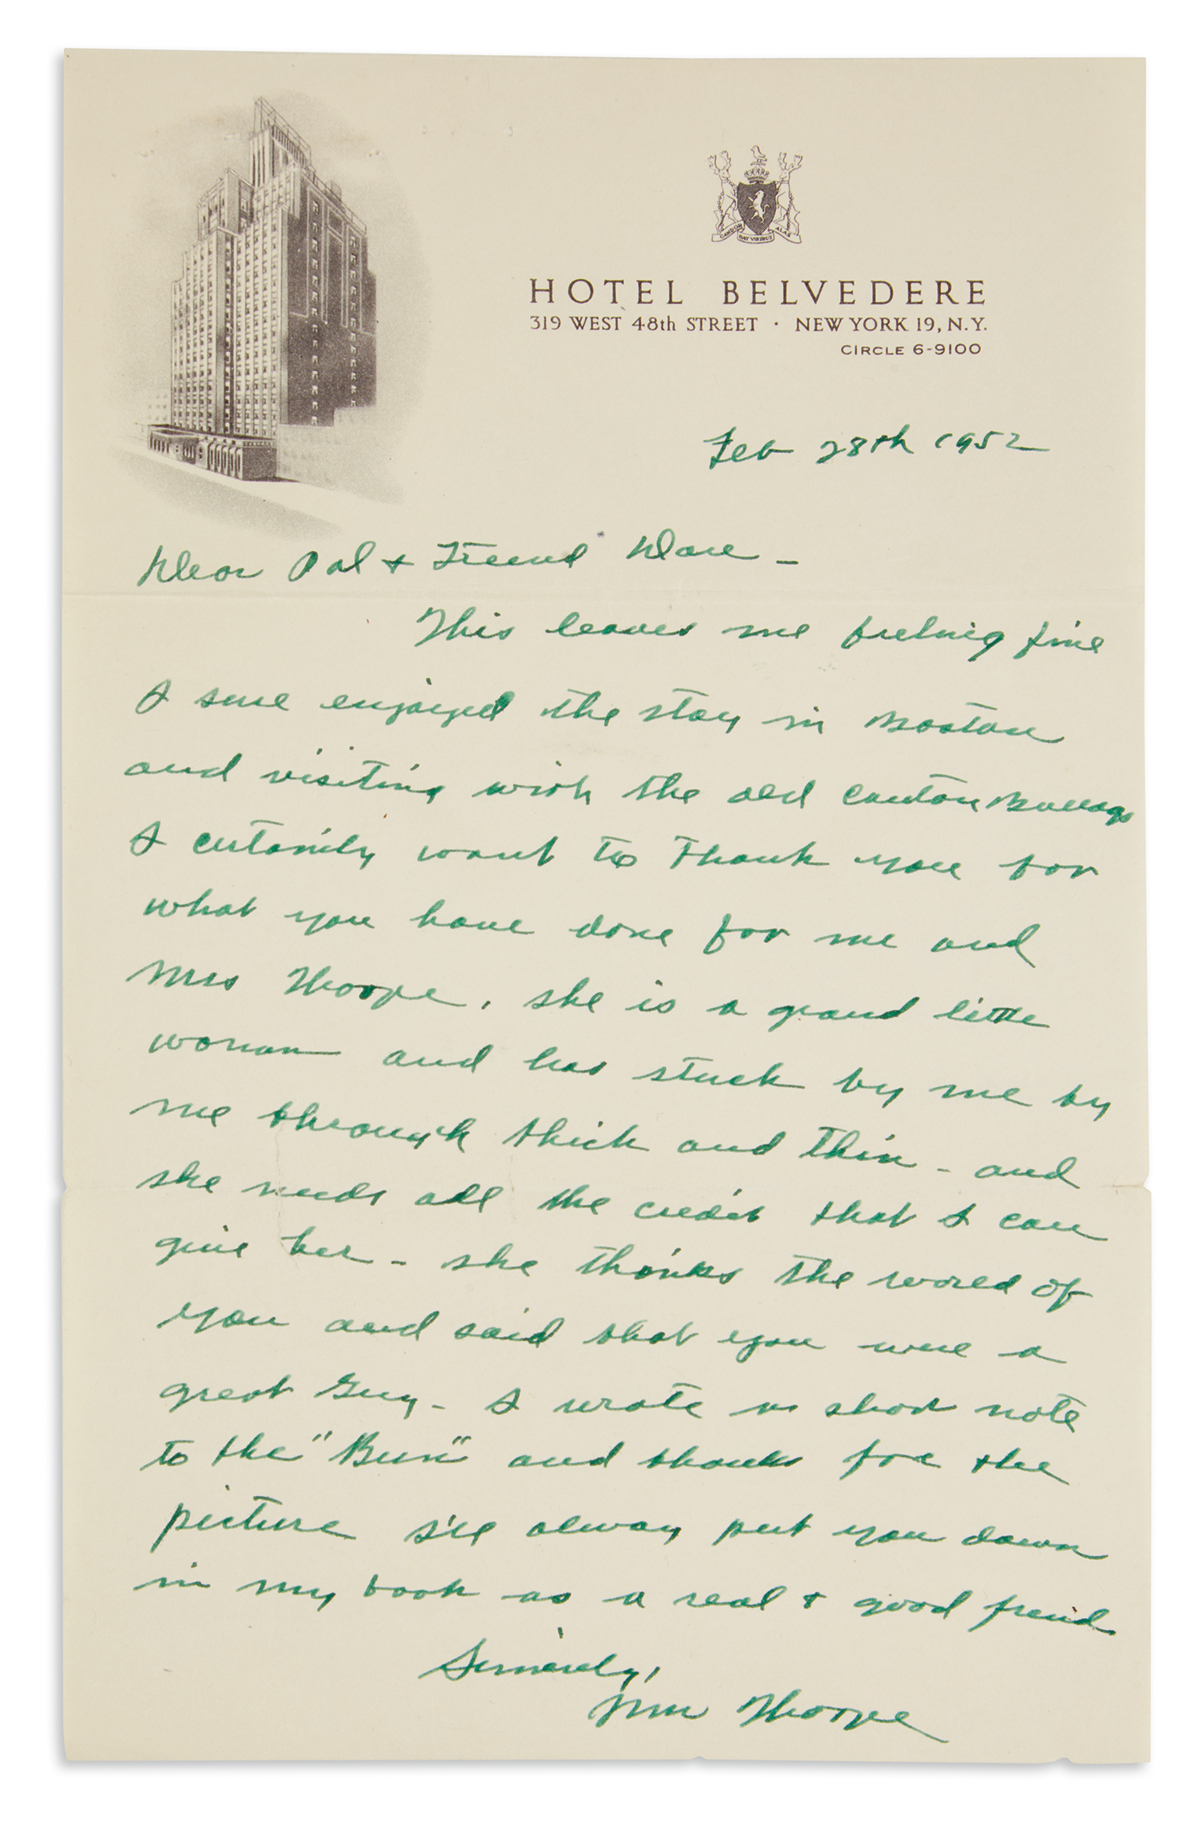 THORPE, JIM. Autograph Letter Signed, to Daniel G. OConnor, in green ink,